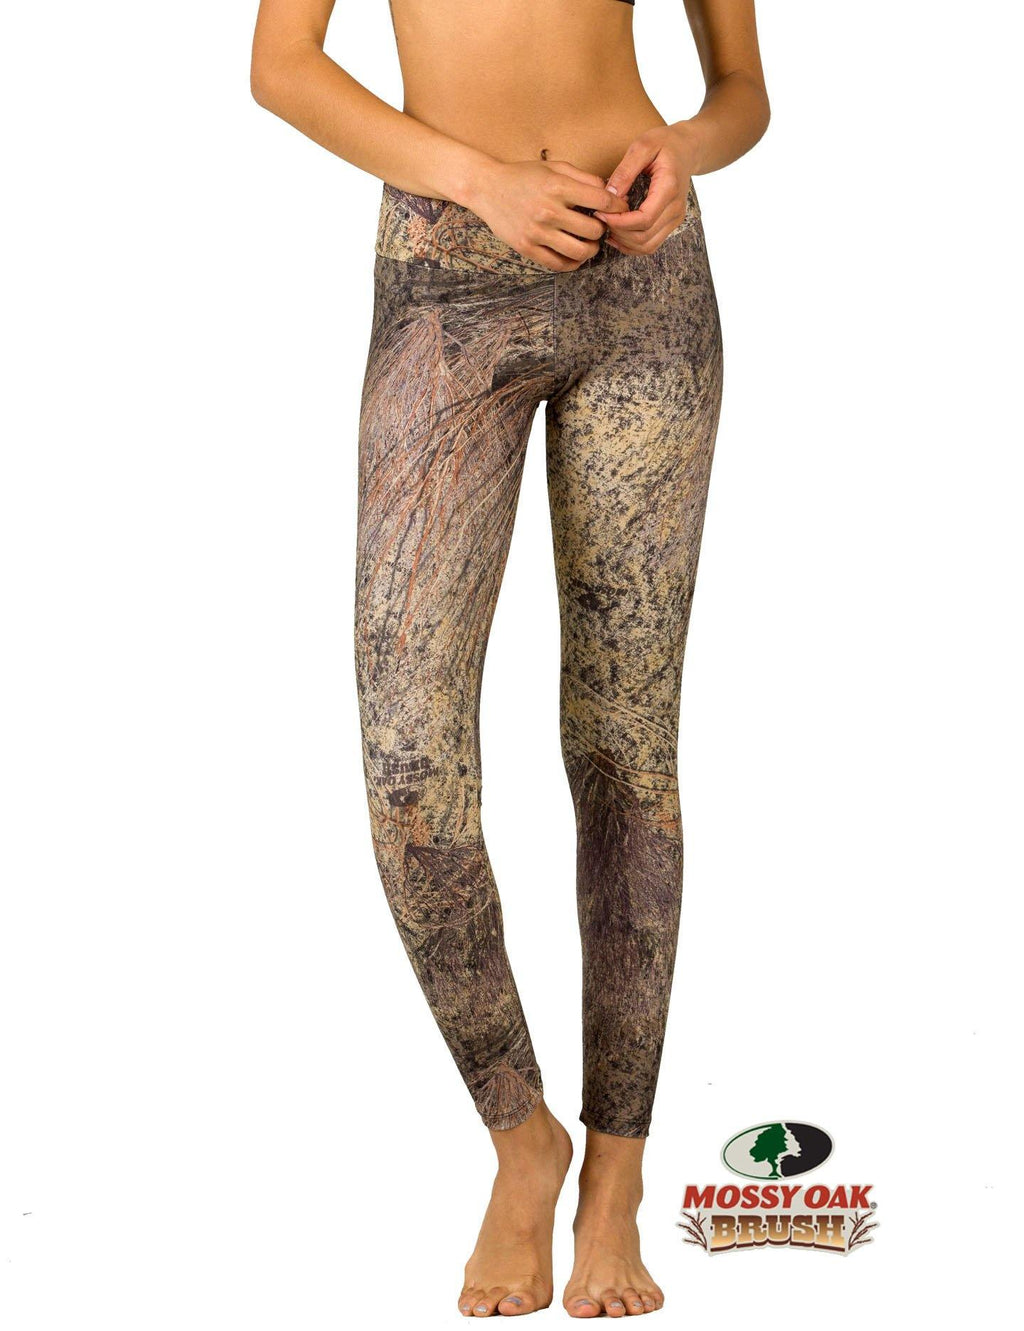 Apsara Leggings Low Waist Full Length, Mossy Oak Brush - Apsara Style